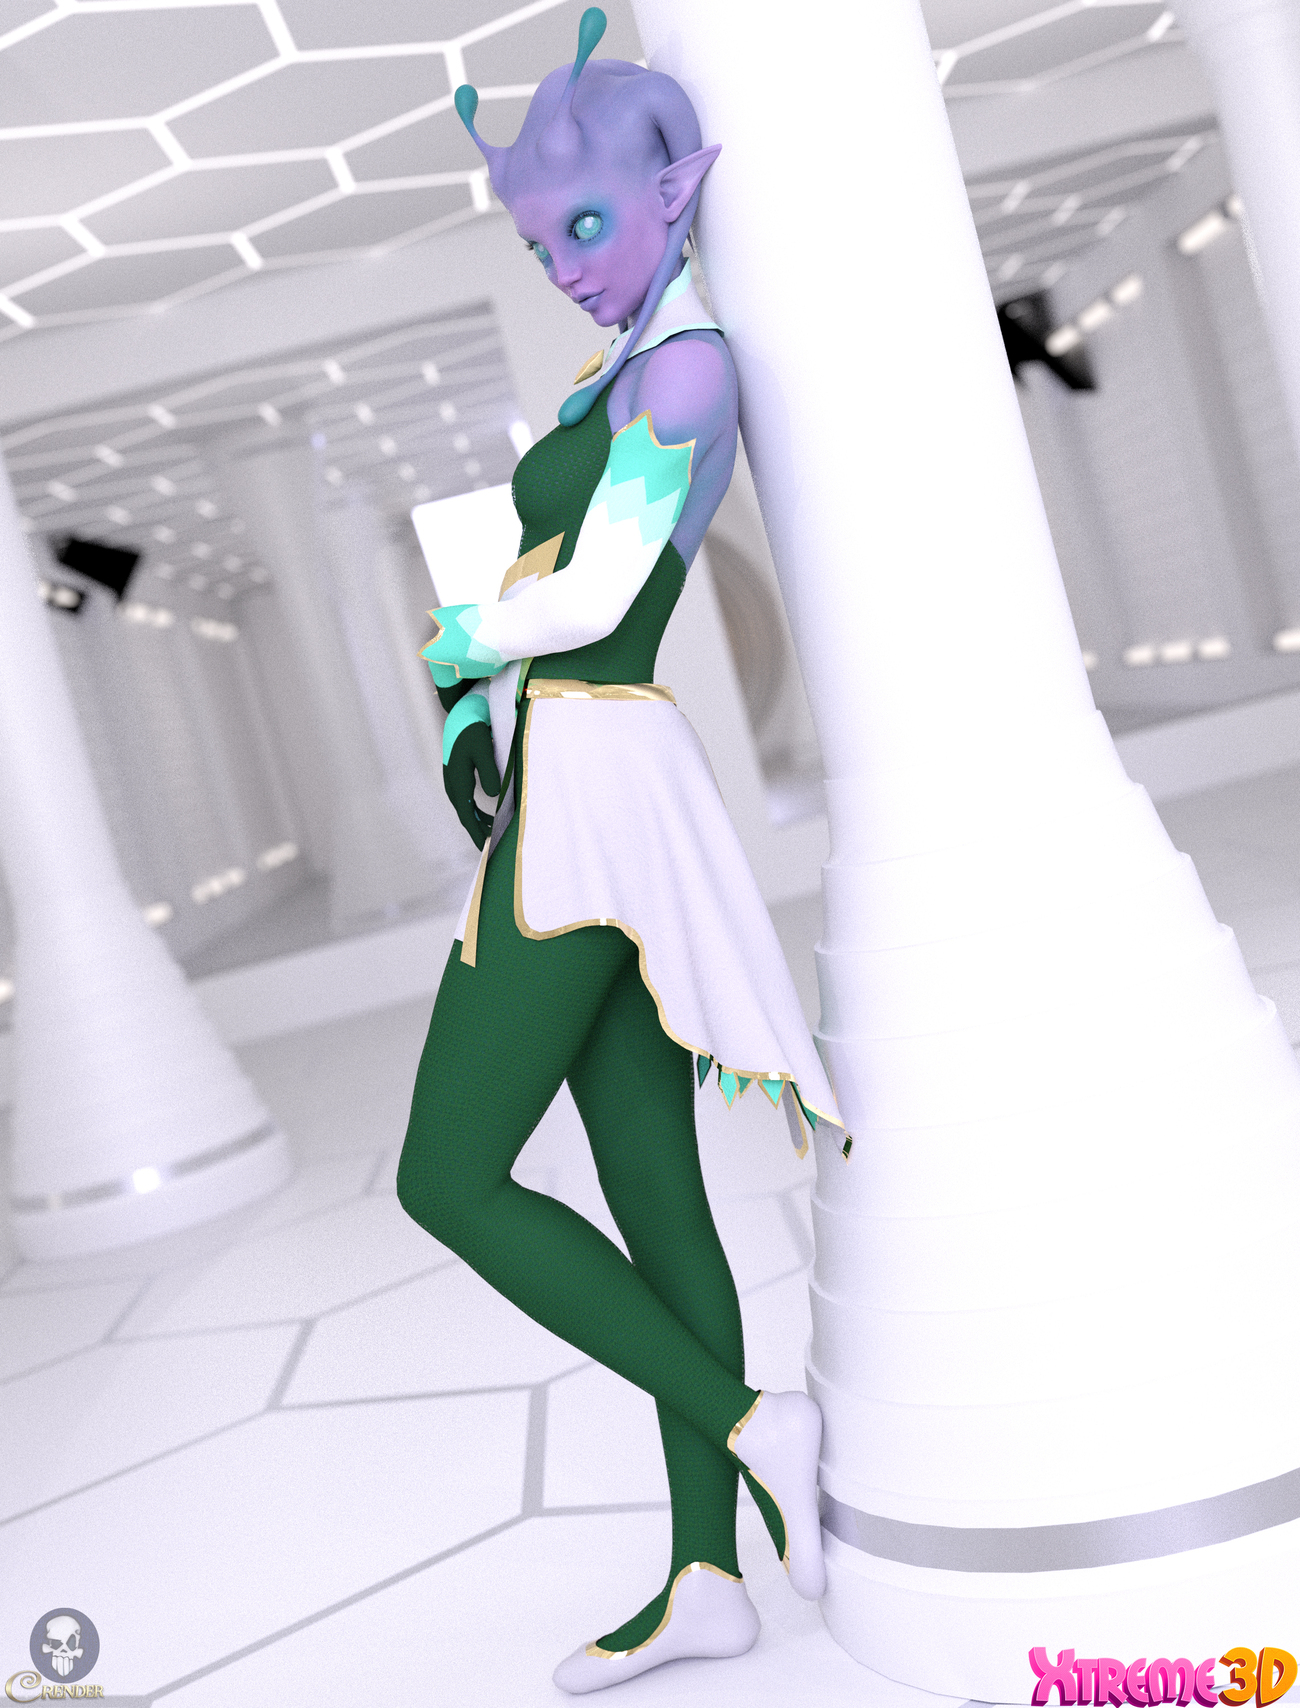 dForce Galine Outfit for G8F by Mella_via by crender